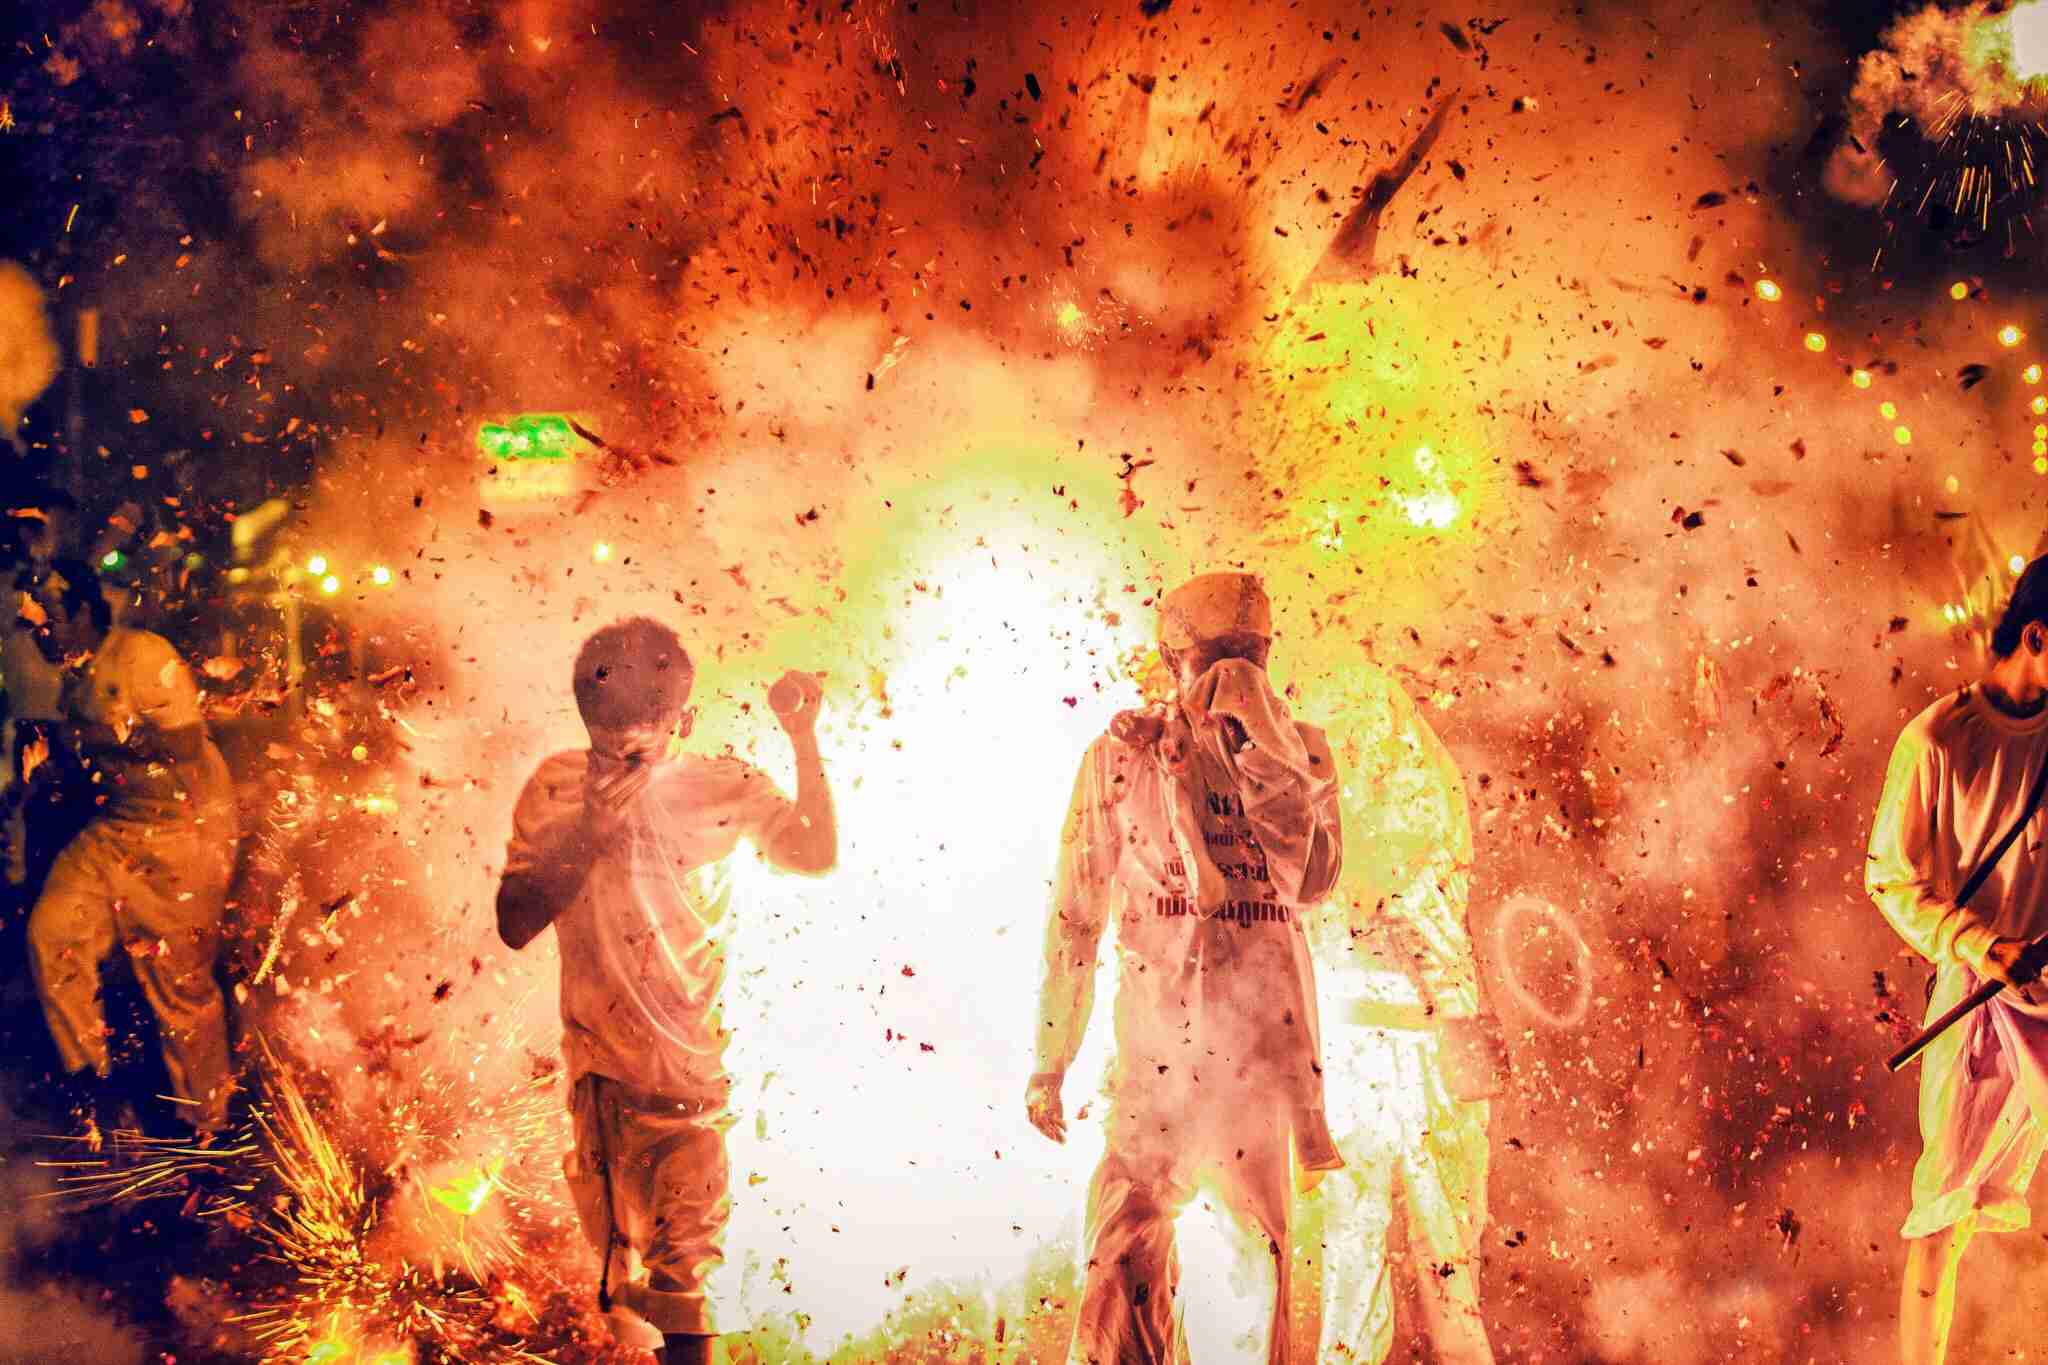 Chaotic firecrackers during the vegetarian festival in Phuket